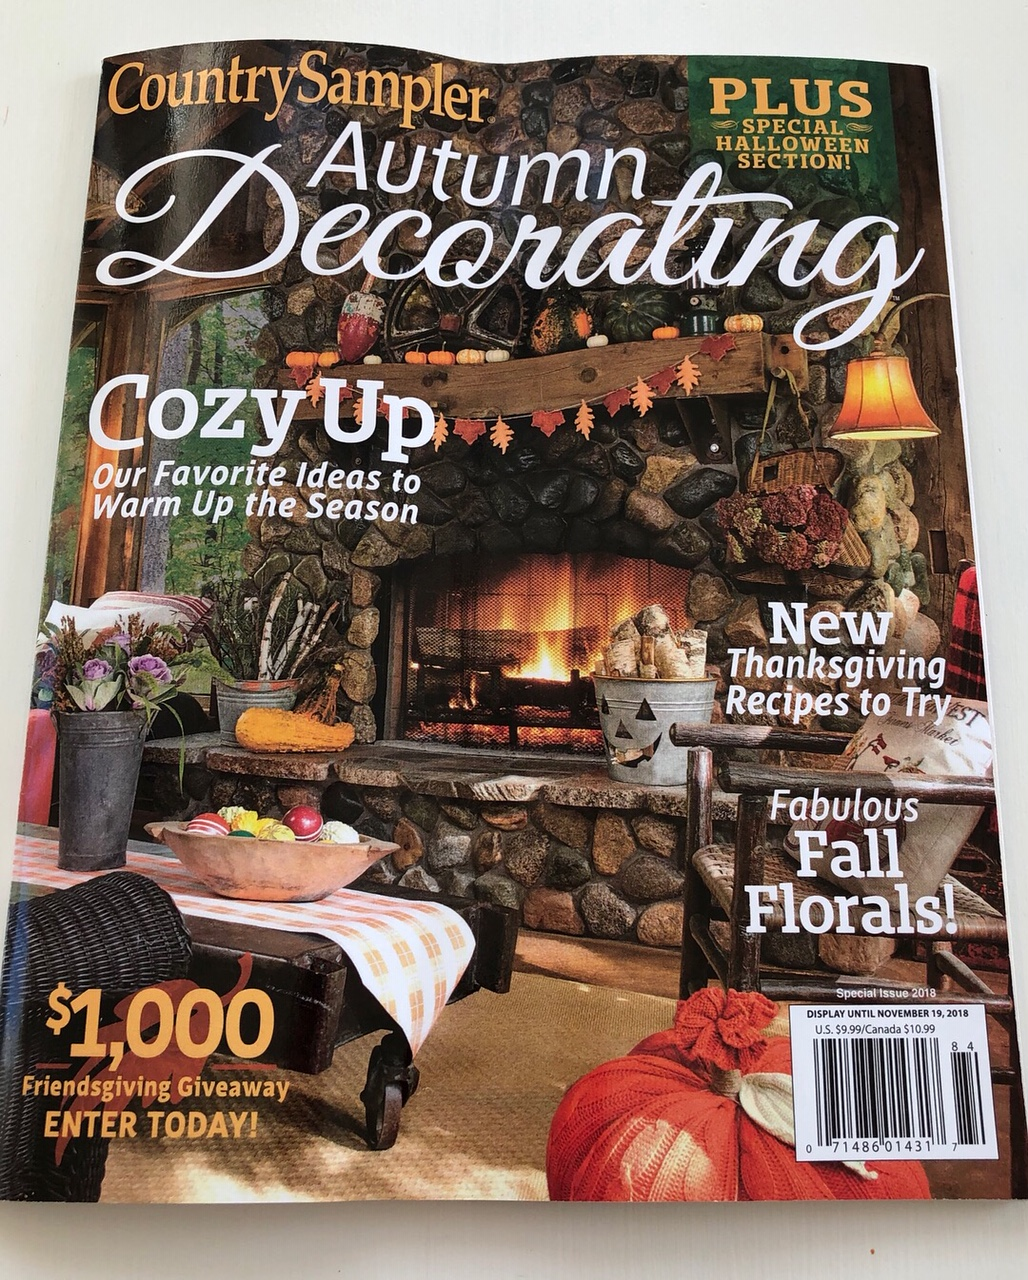 Adventures in Decorating: Thank You Country Sampler Magazine!